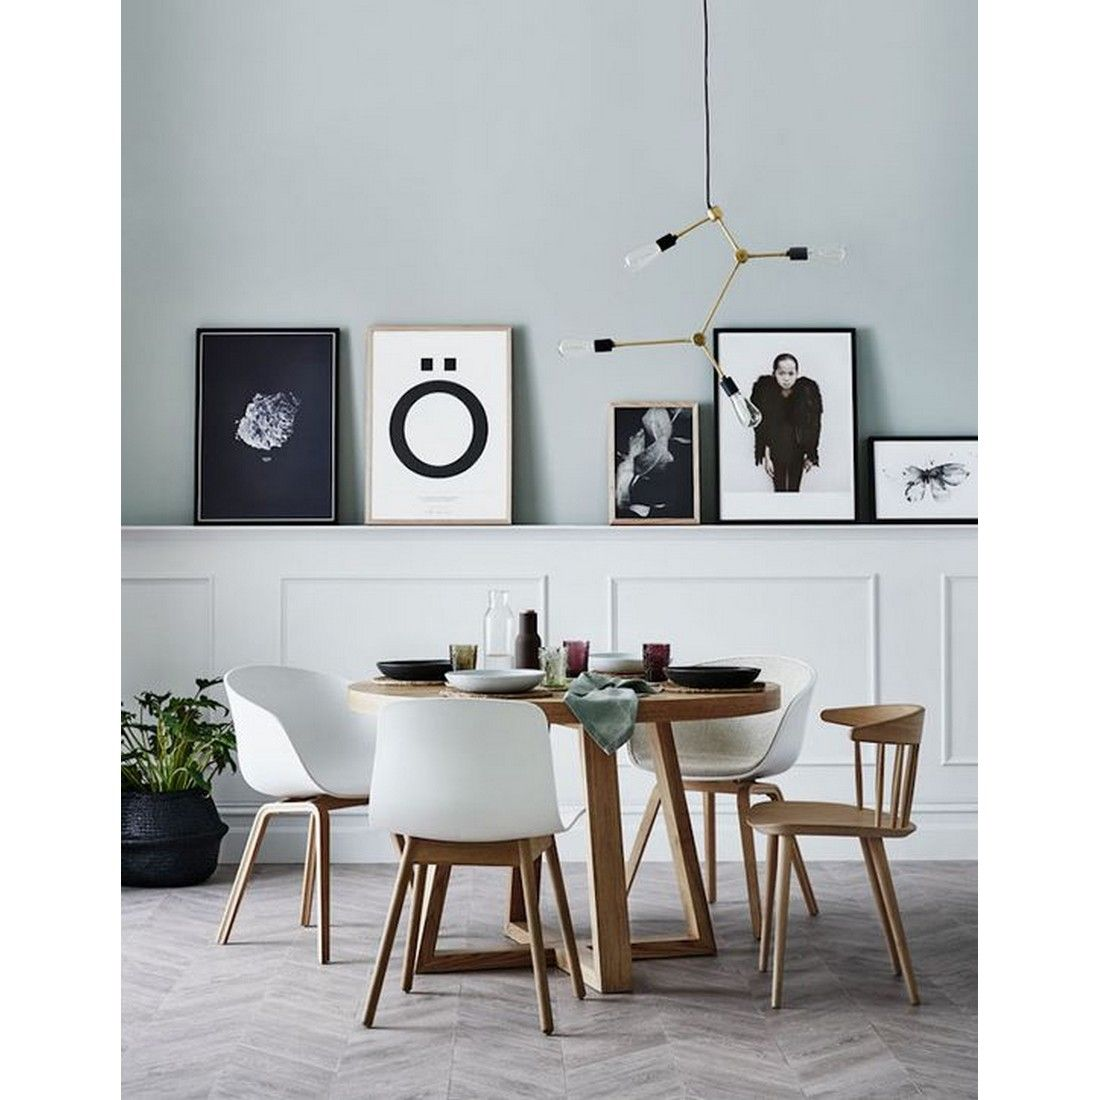 Scandinavian dining room with wooden chairs, yay or nay? #